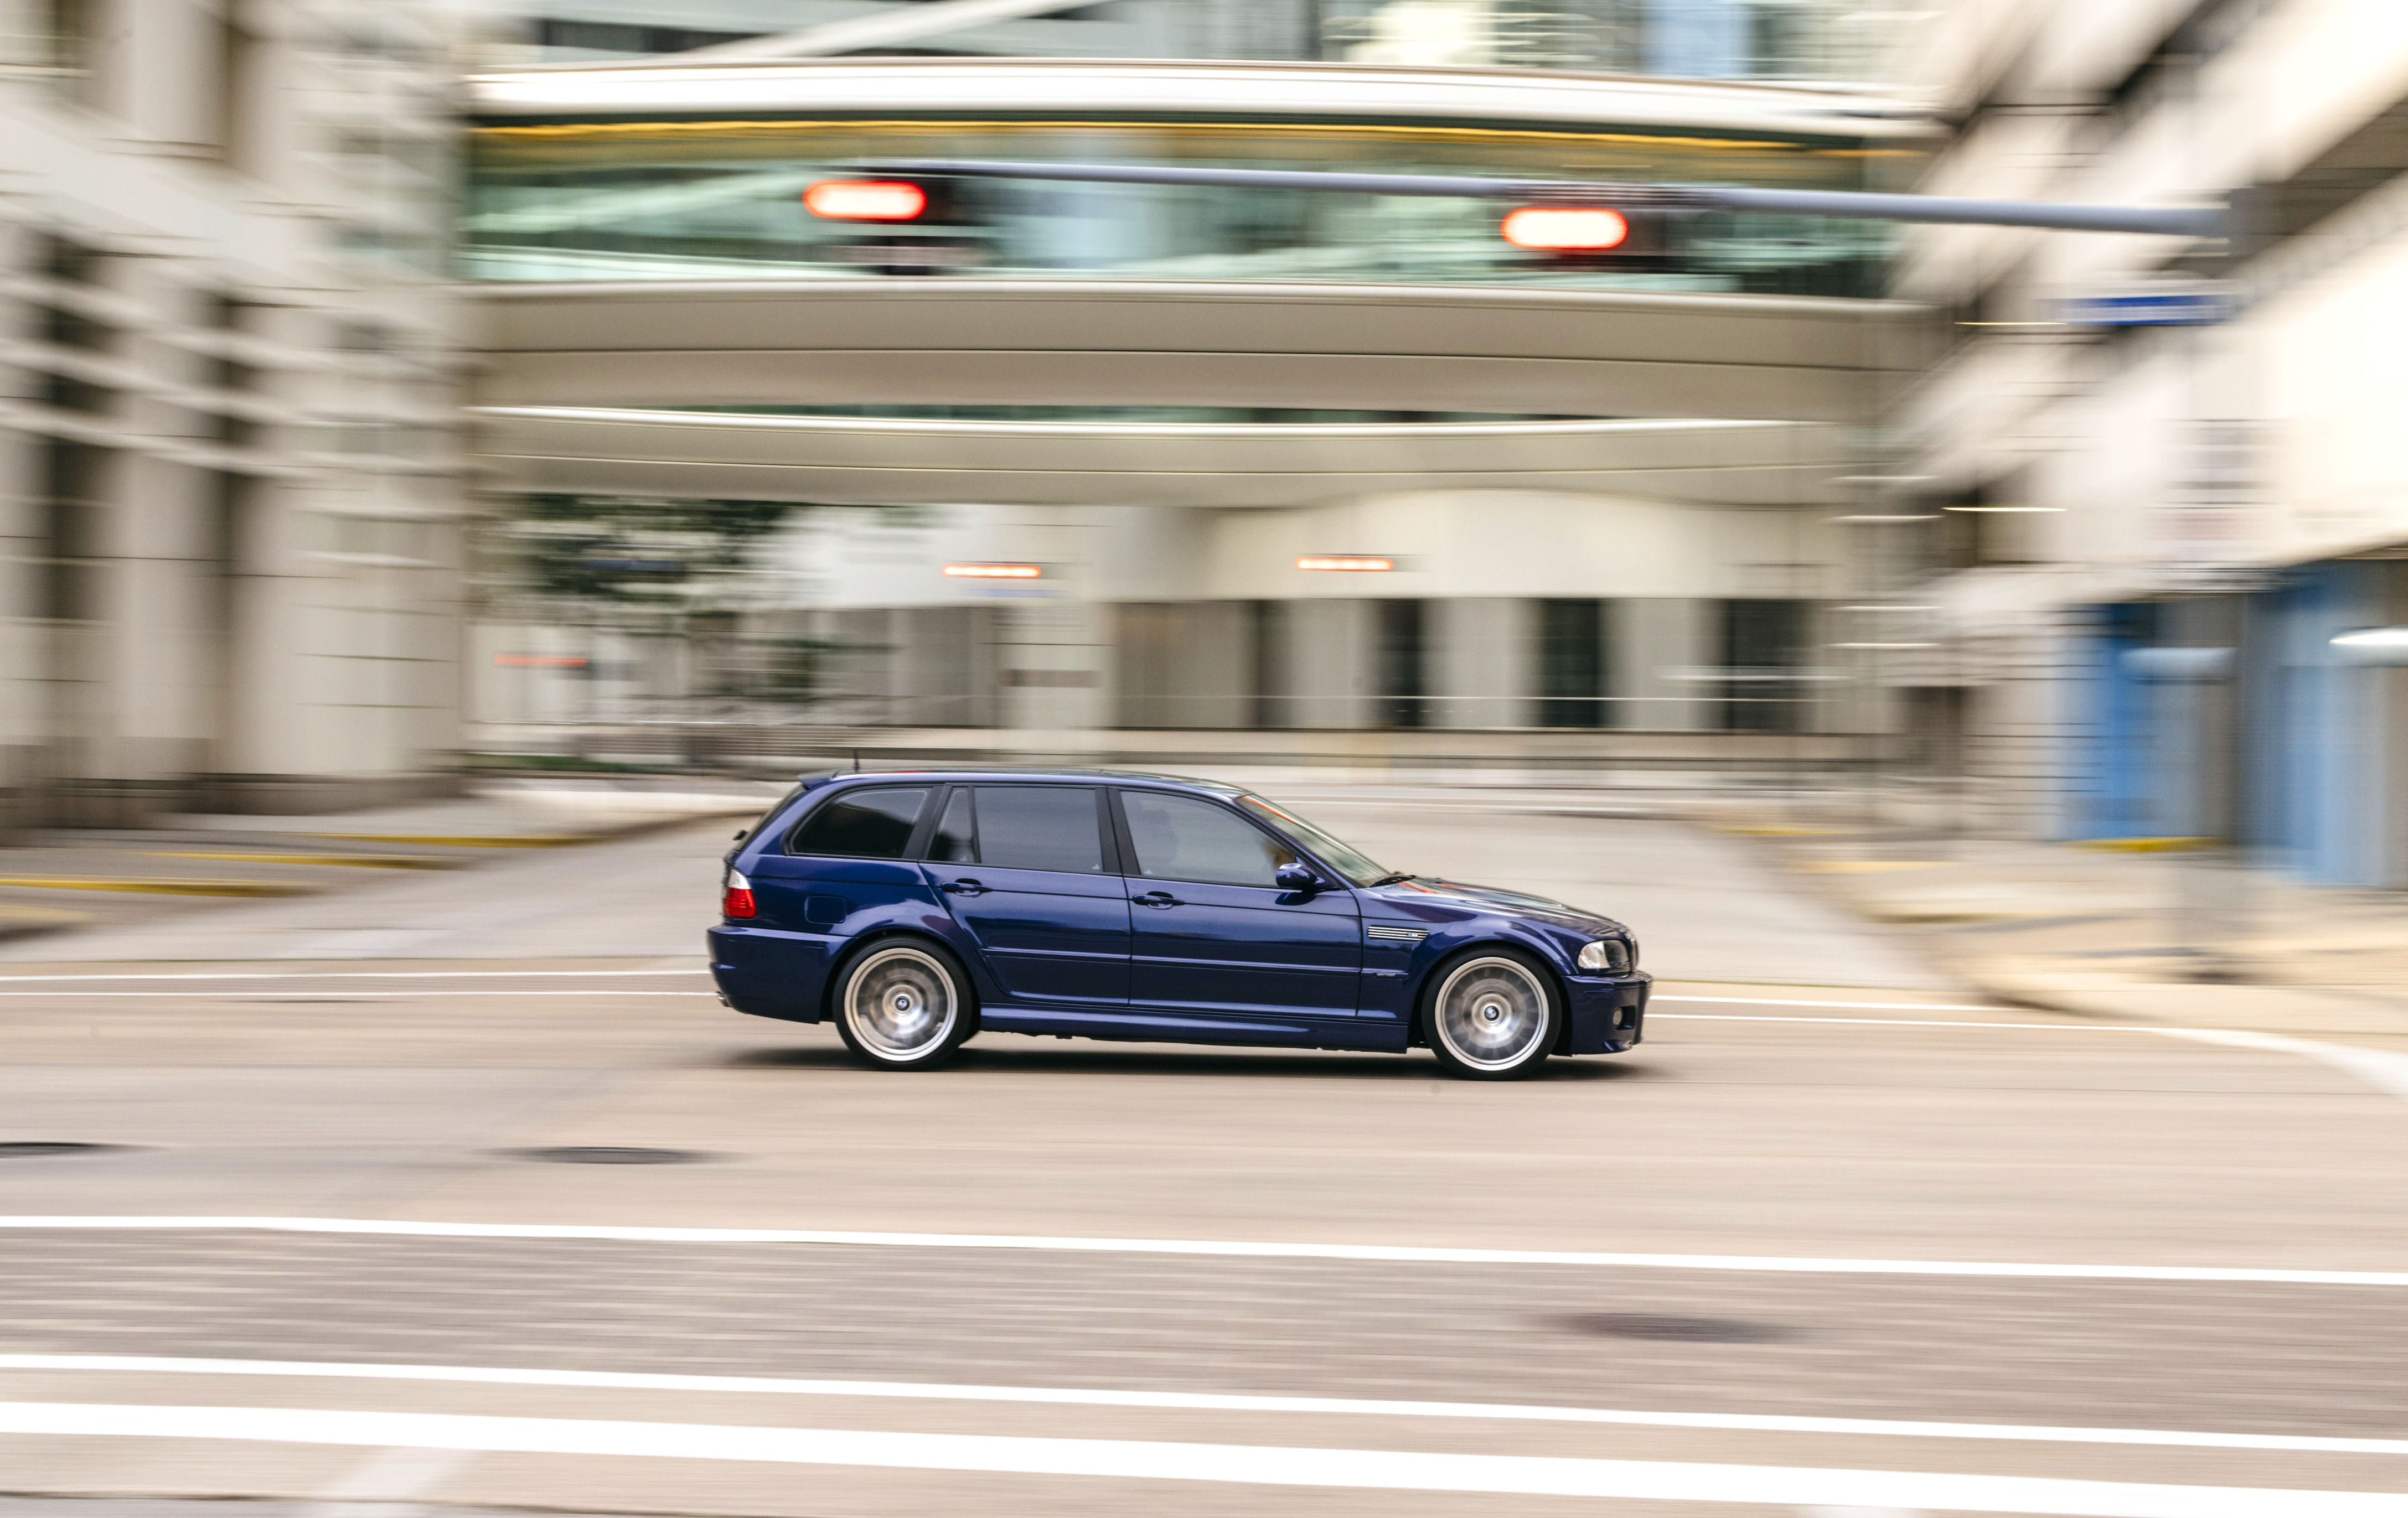 This E46 Bmw M3 Wagon Is As Perfect As We Dreamed It D Be